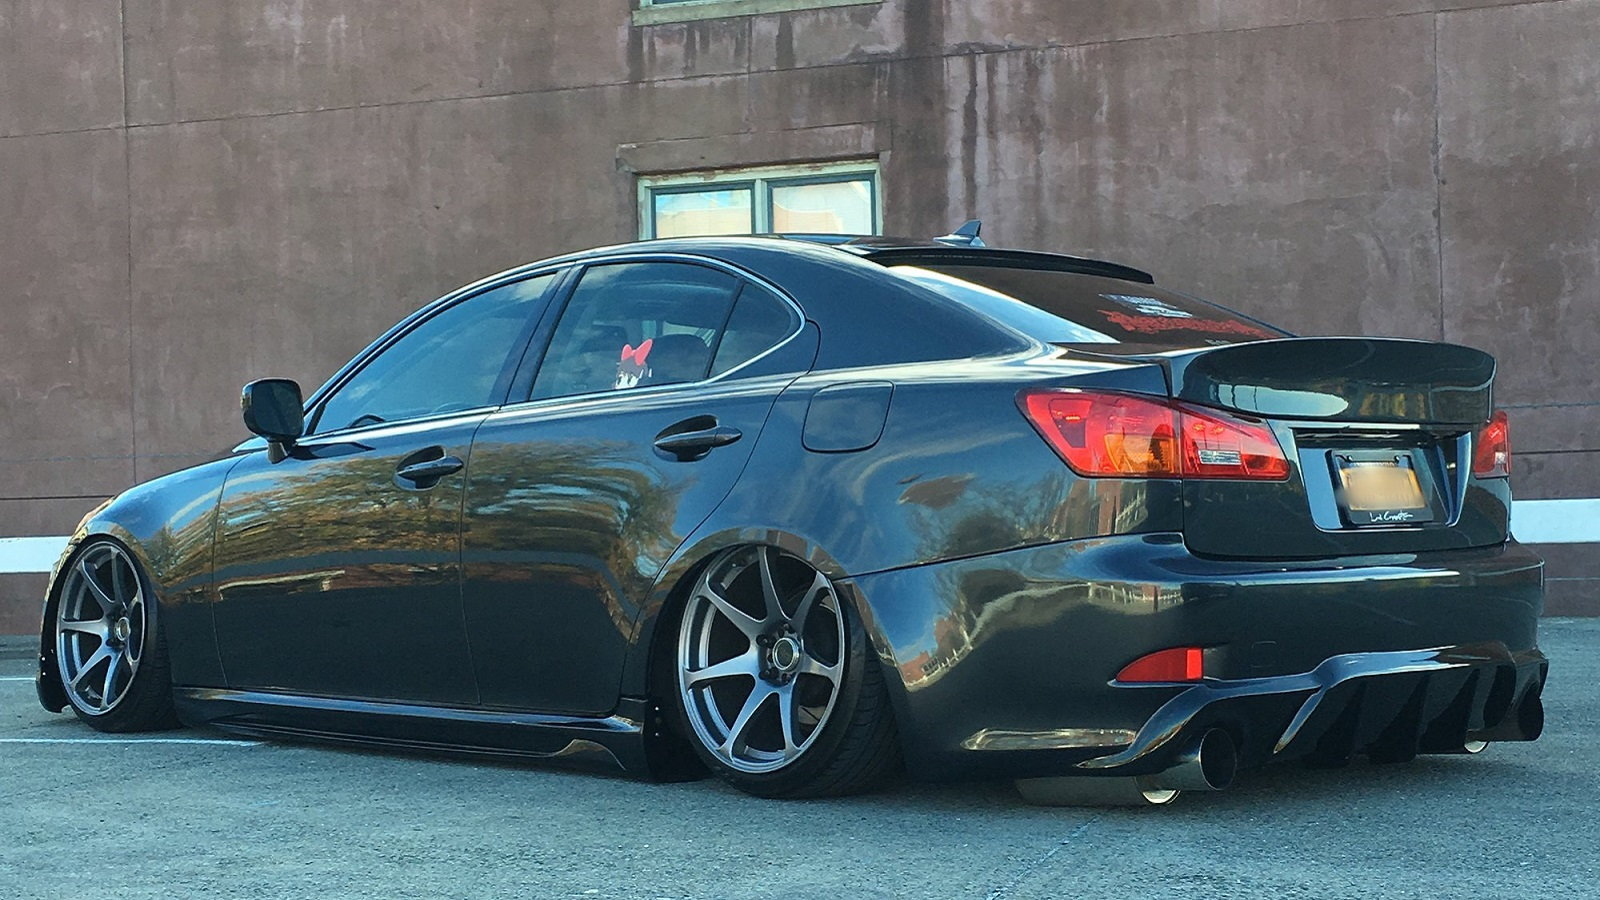 Bagged Lexus IS Build Is a Real Ground Scraper